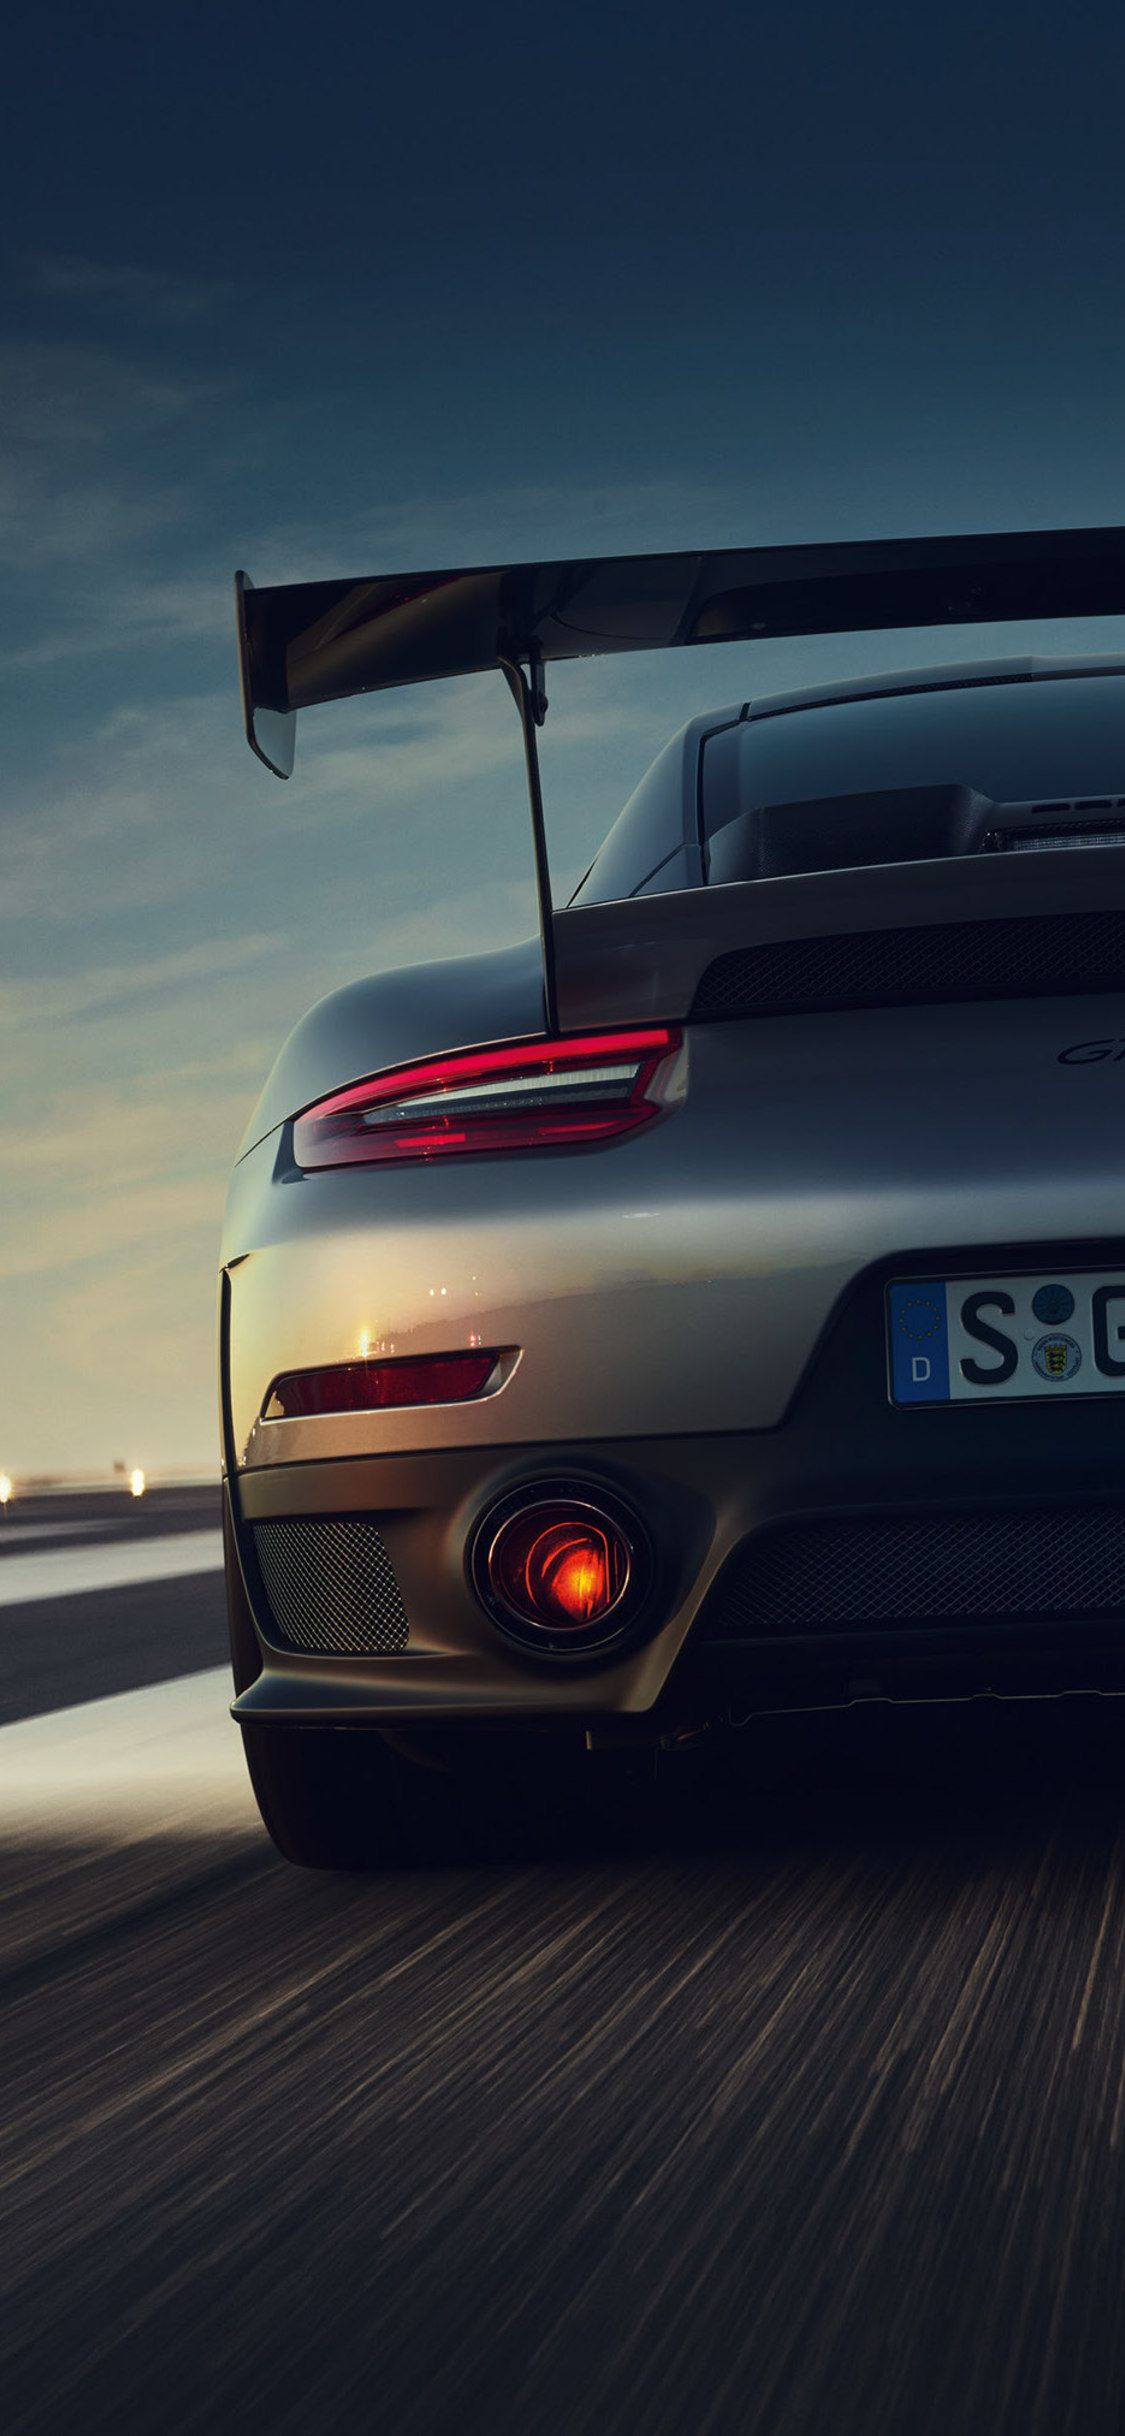 Porsche iPhone Wallpapers , Top Free Porsche iPhone